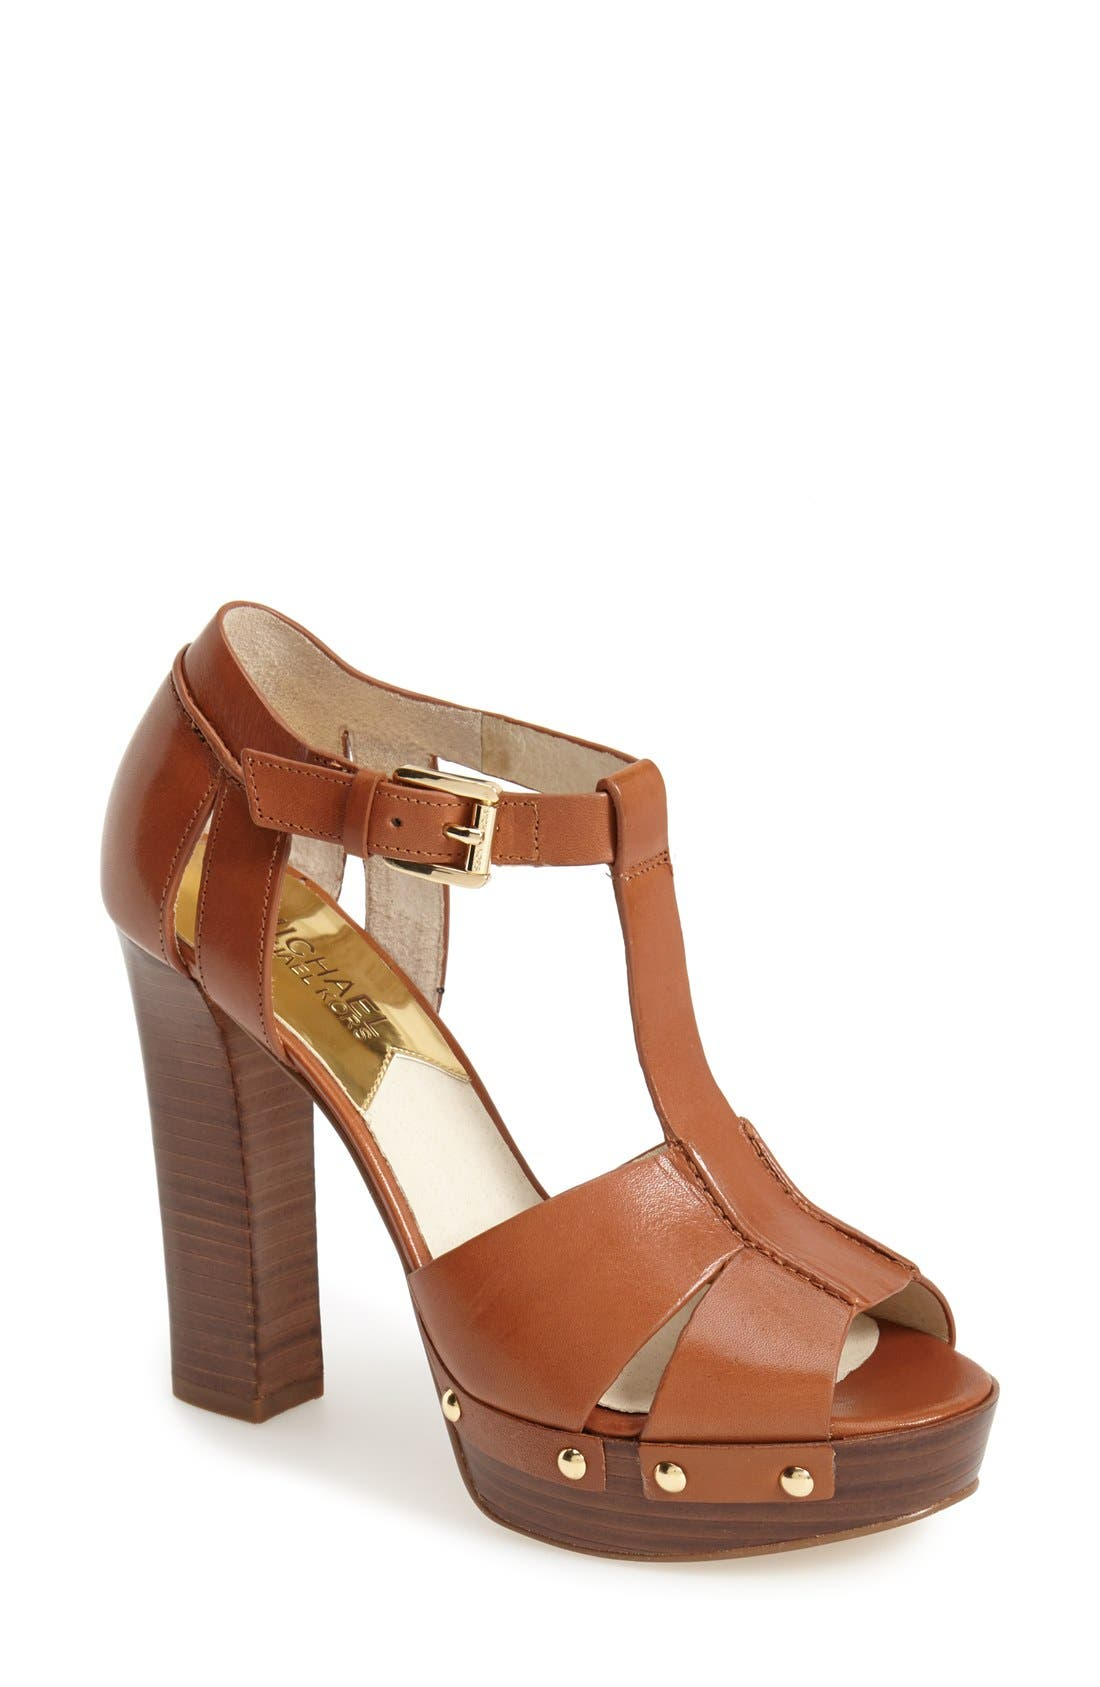 Alternate Image 1 Selected - MICHAEL Michael Kors 'Beatrice' Leather T-Strap Platform Sandal (Women)